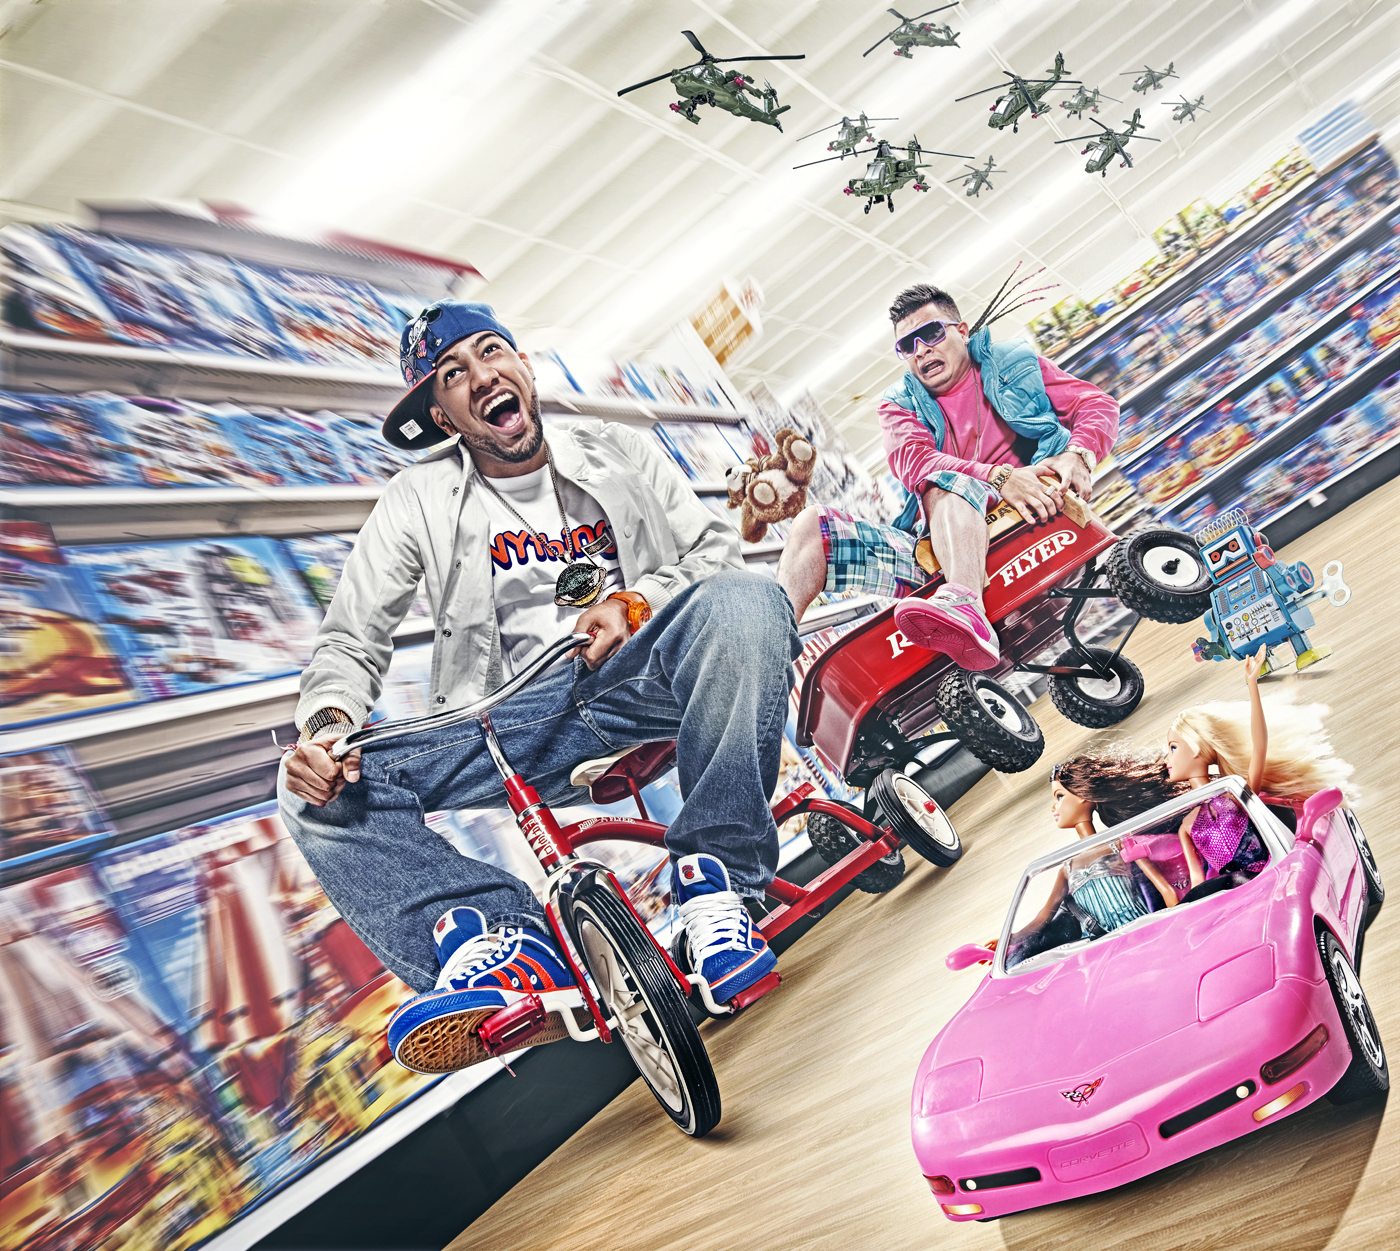 jowell y randy feat voltio lets go: